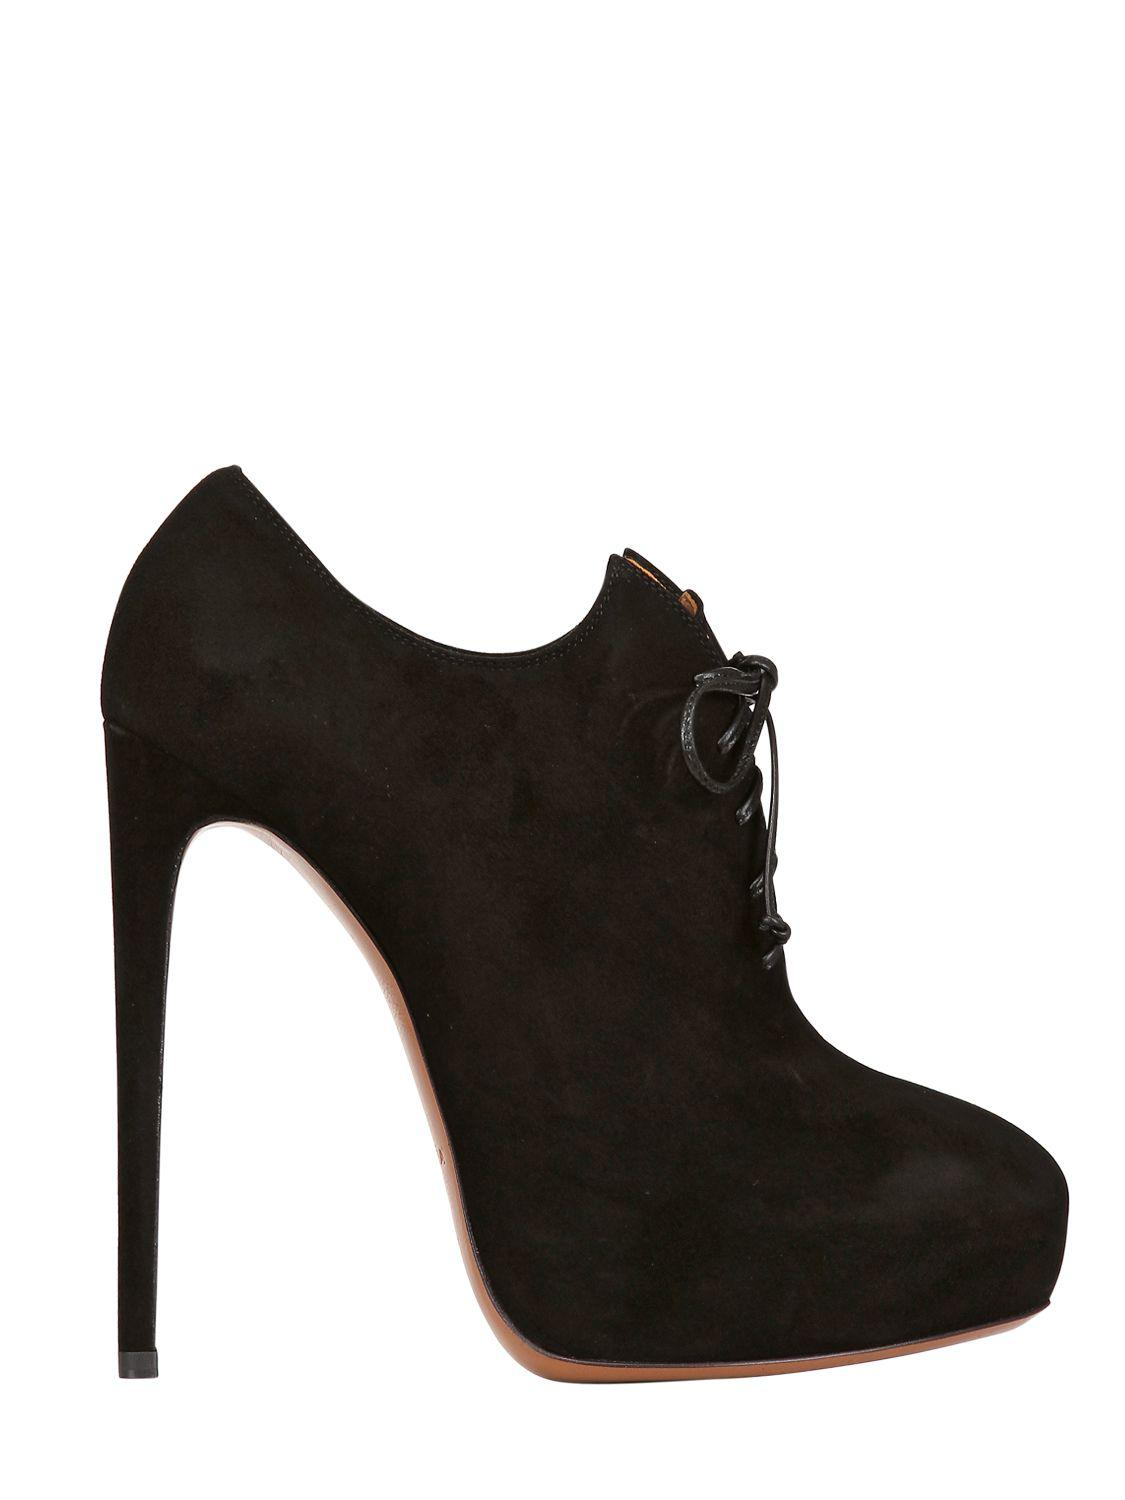 Alaïa 130mm Suede Lace Up Boots in